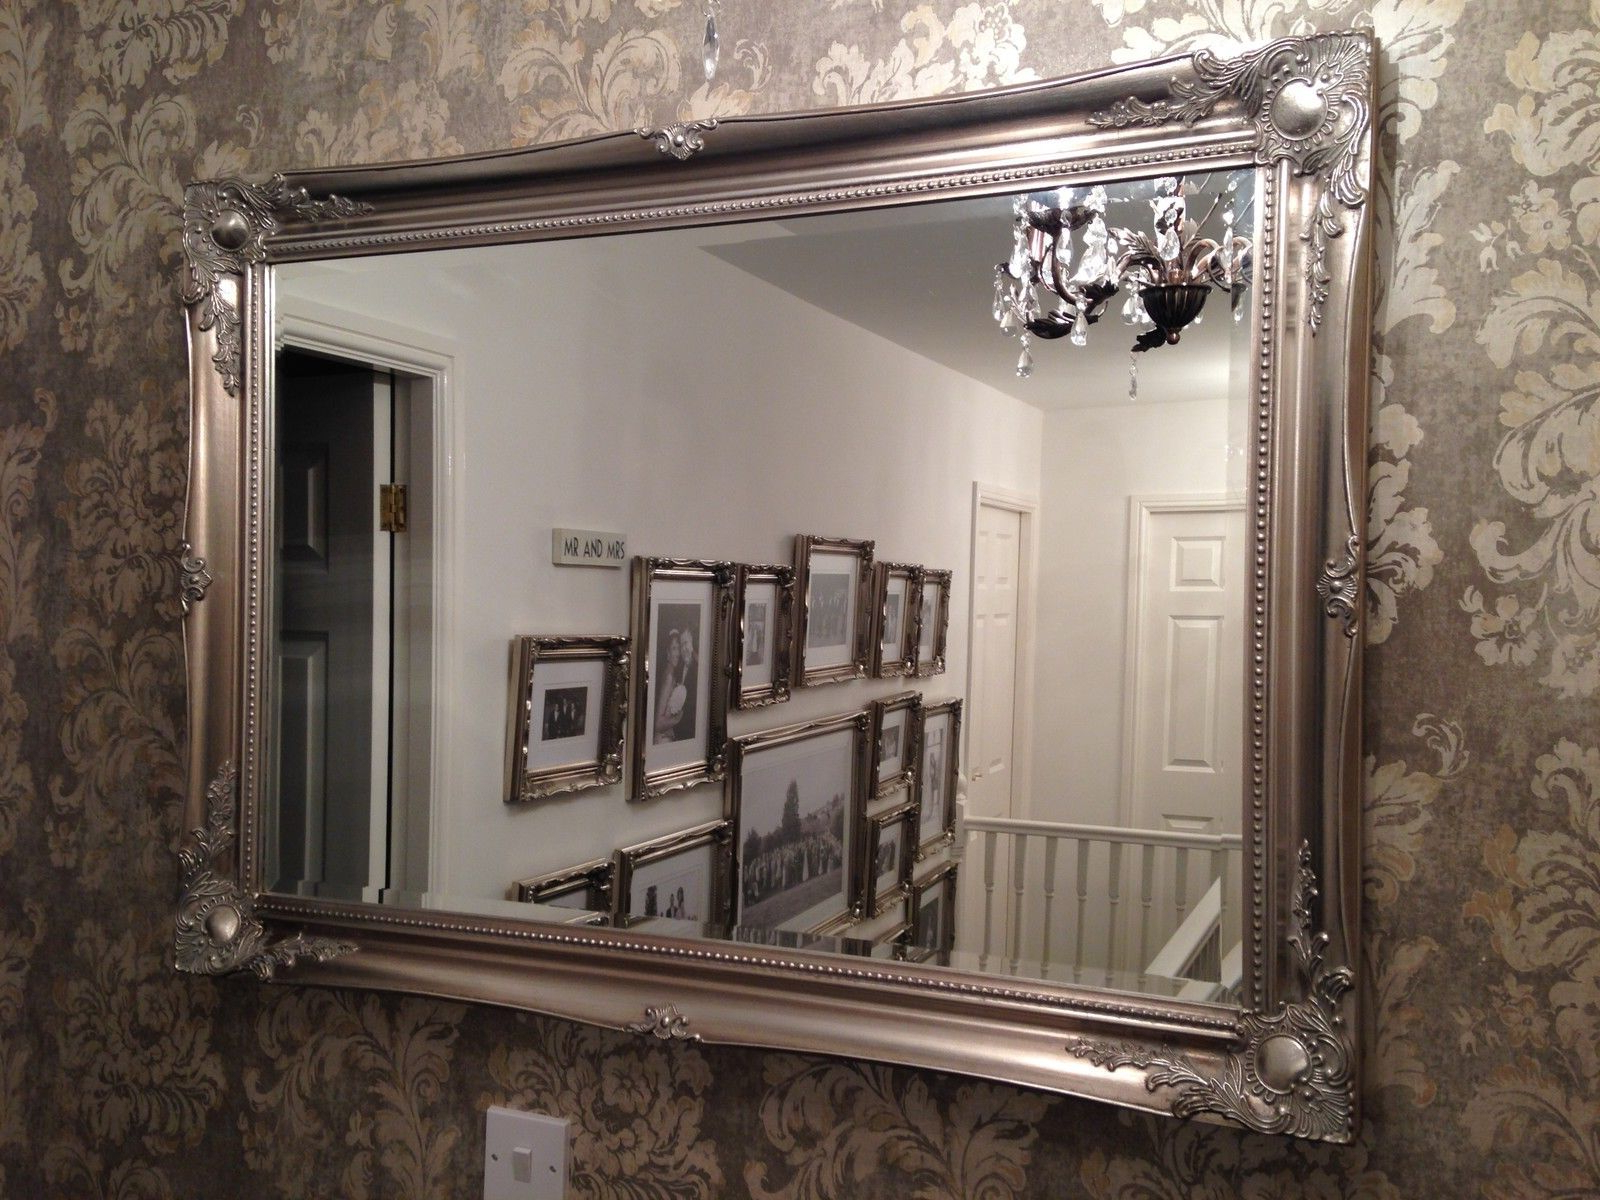 Best And Newest X Large Antique Silver Shabby Chic Ornate Decorative Wall Mirror Save ££S Pertaining To X Large Wall Mirrors (View 2 of 20)